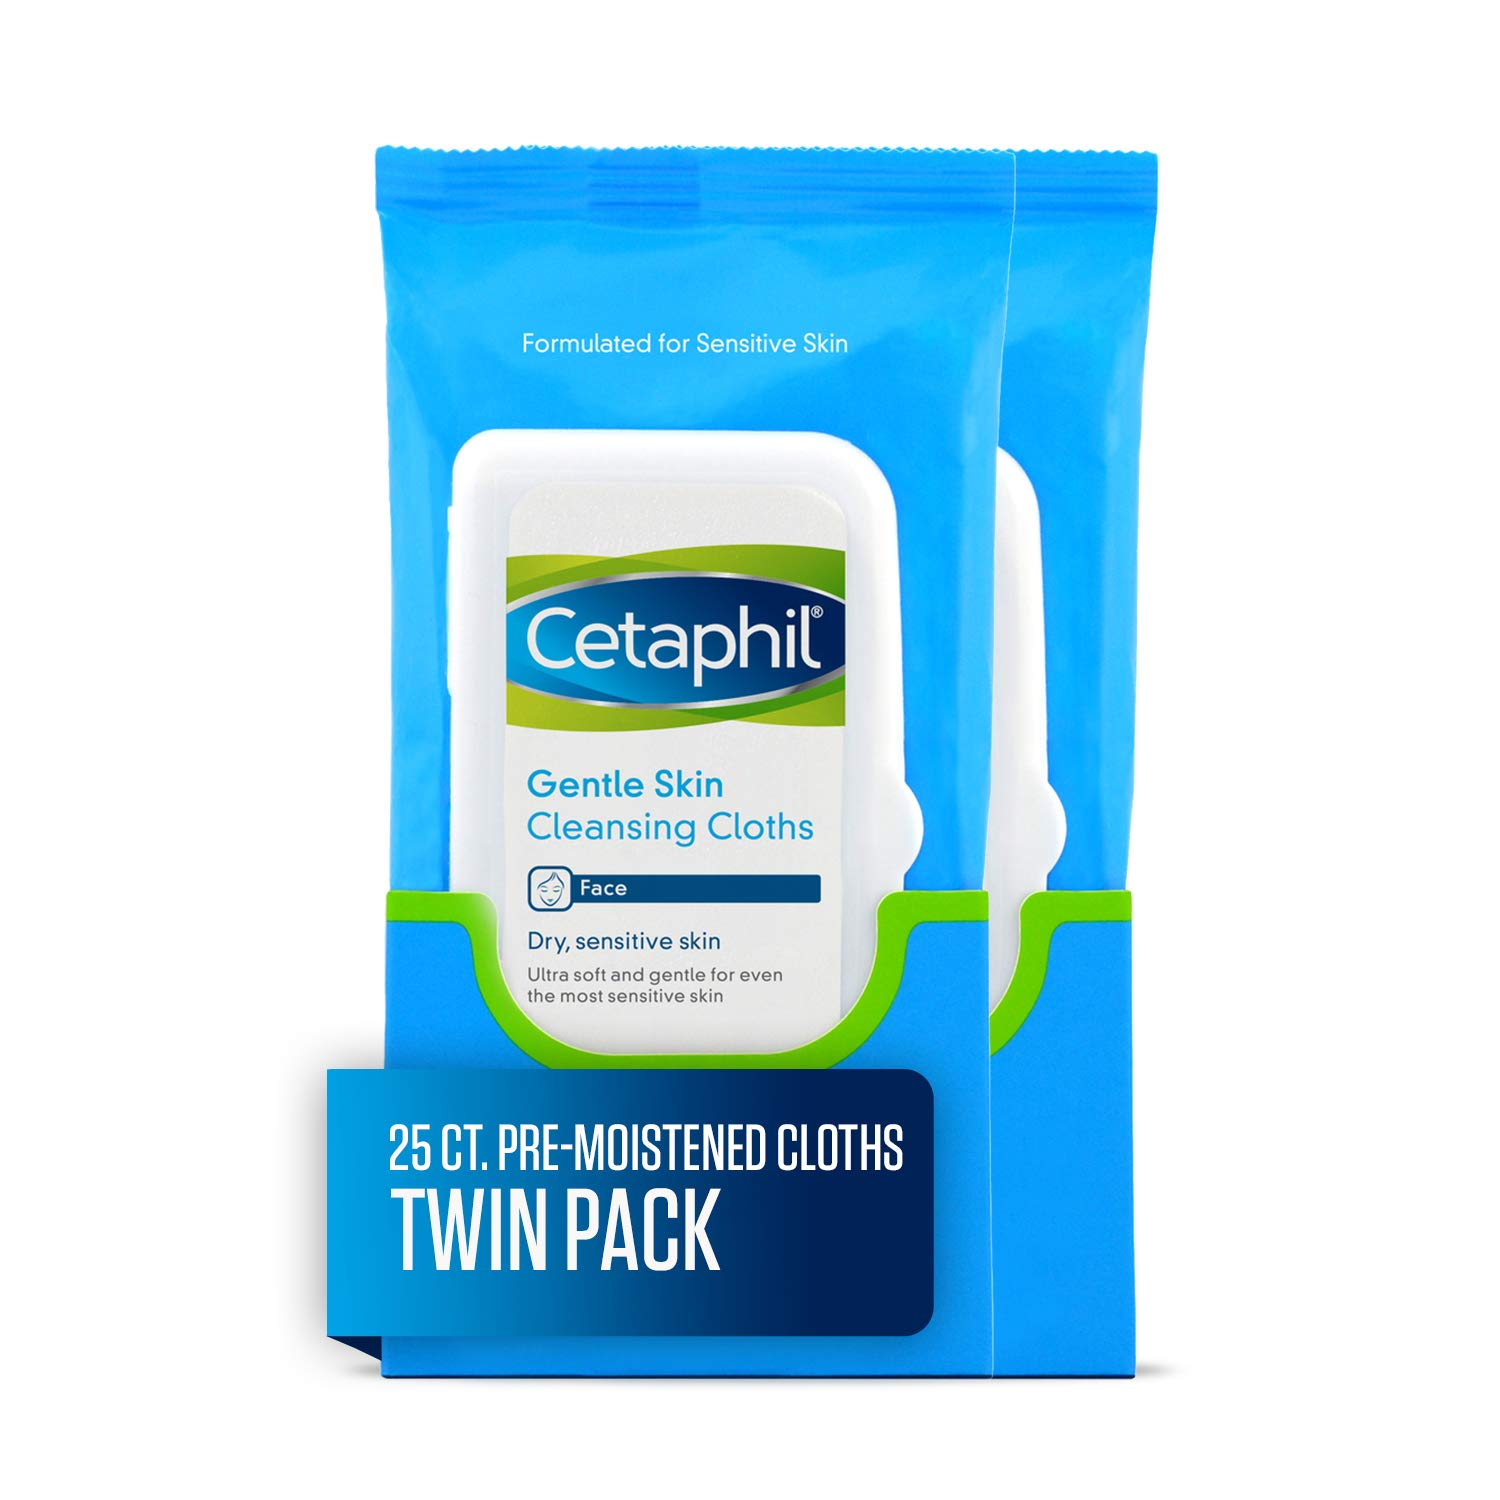 Twin pack of Cetaphil sanitising wipes